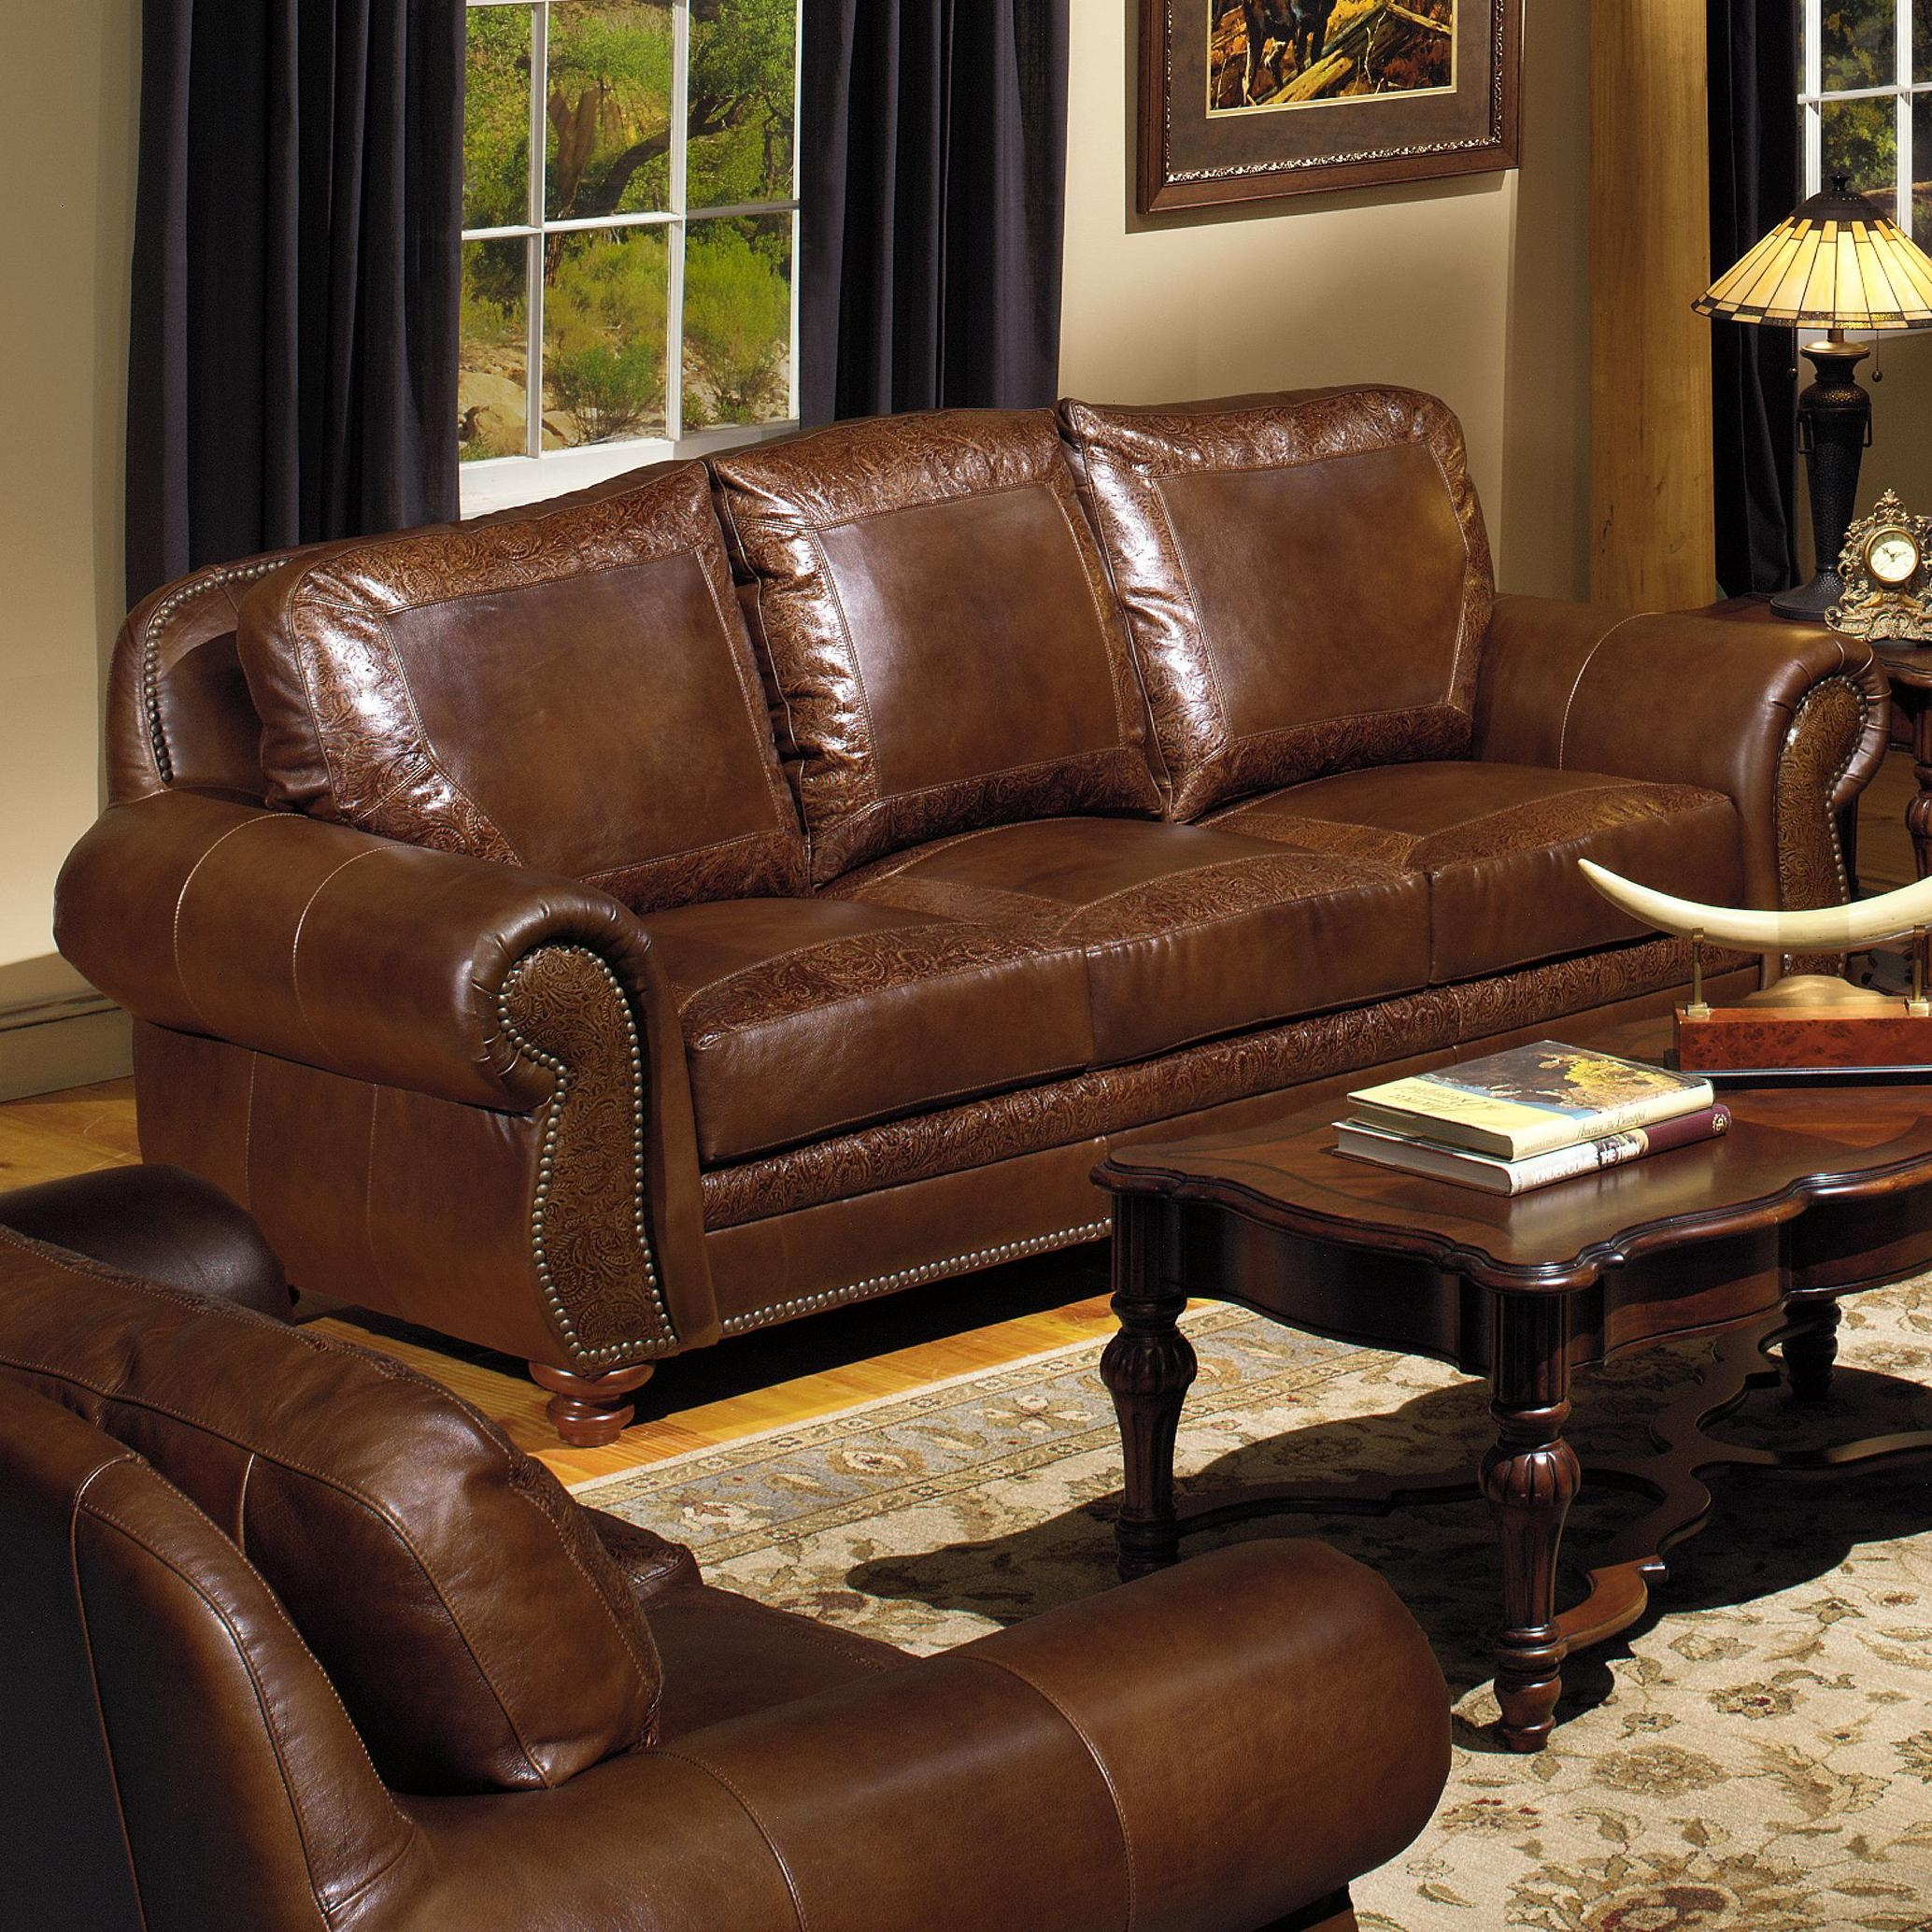 modern twine curved arm sofa durable bed leather sofas with nailhead trim ideas on foter burgundy